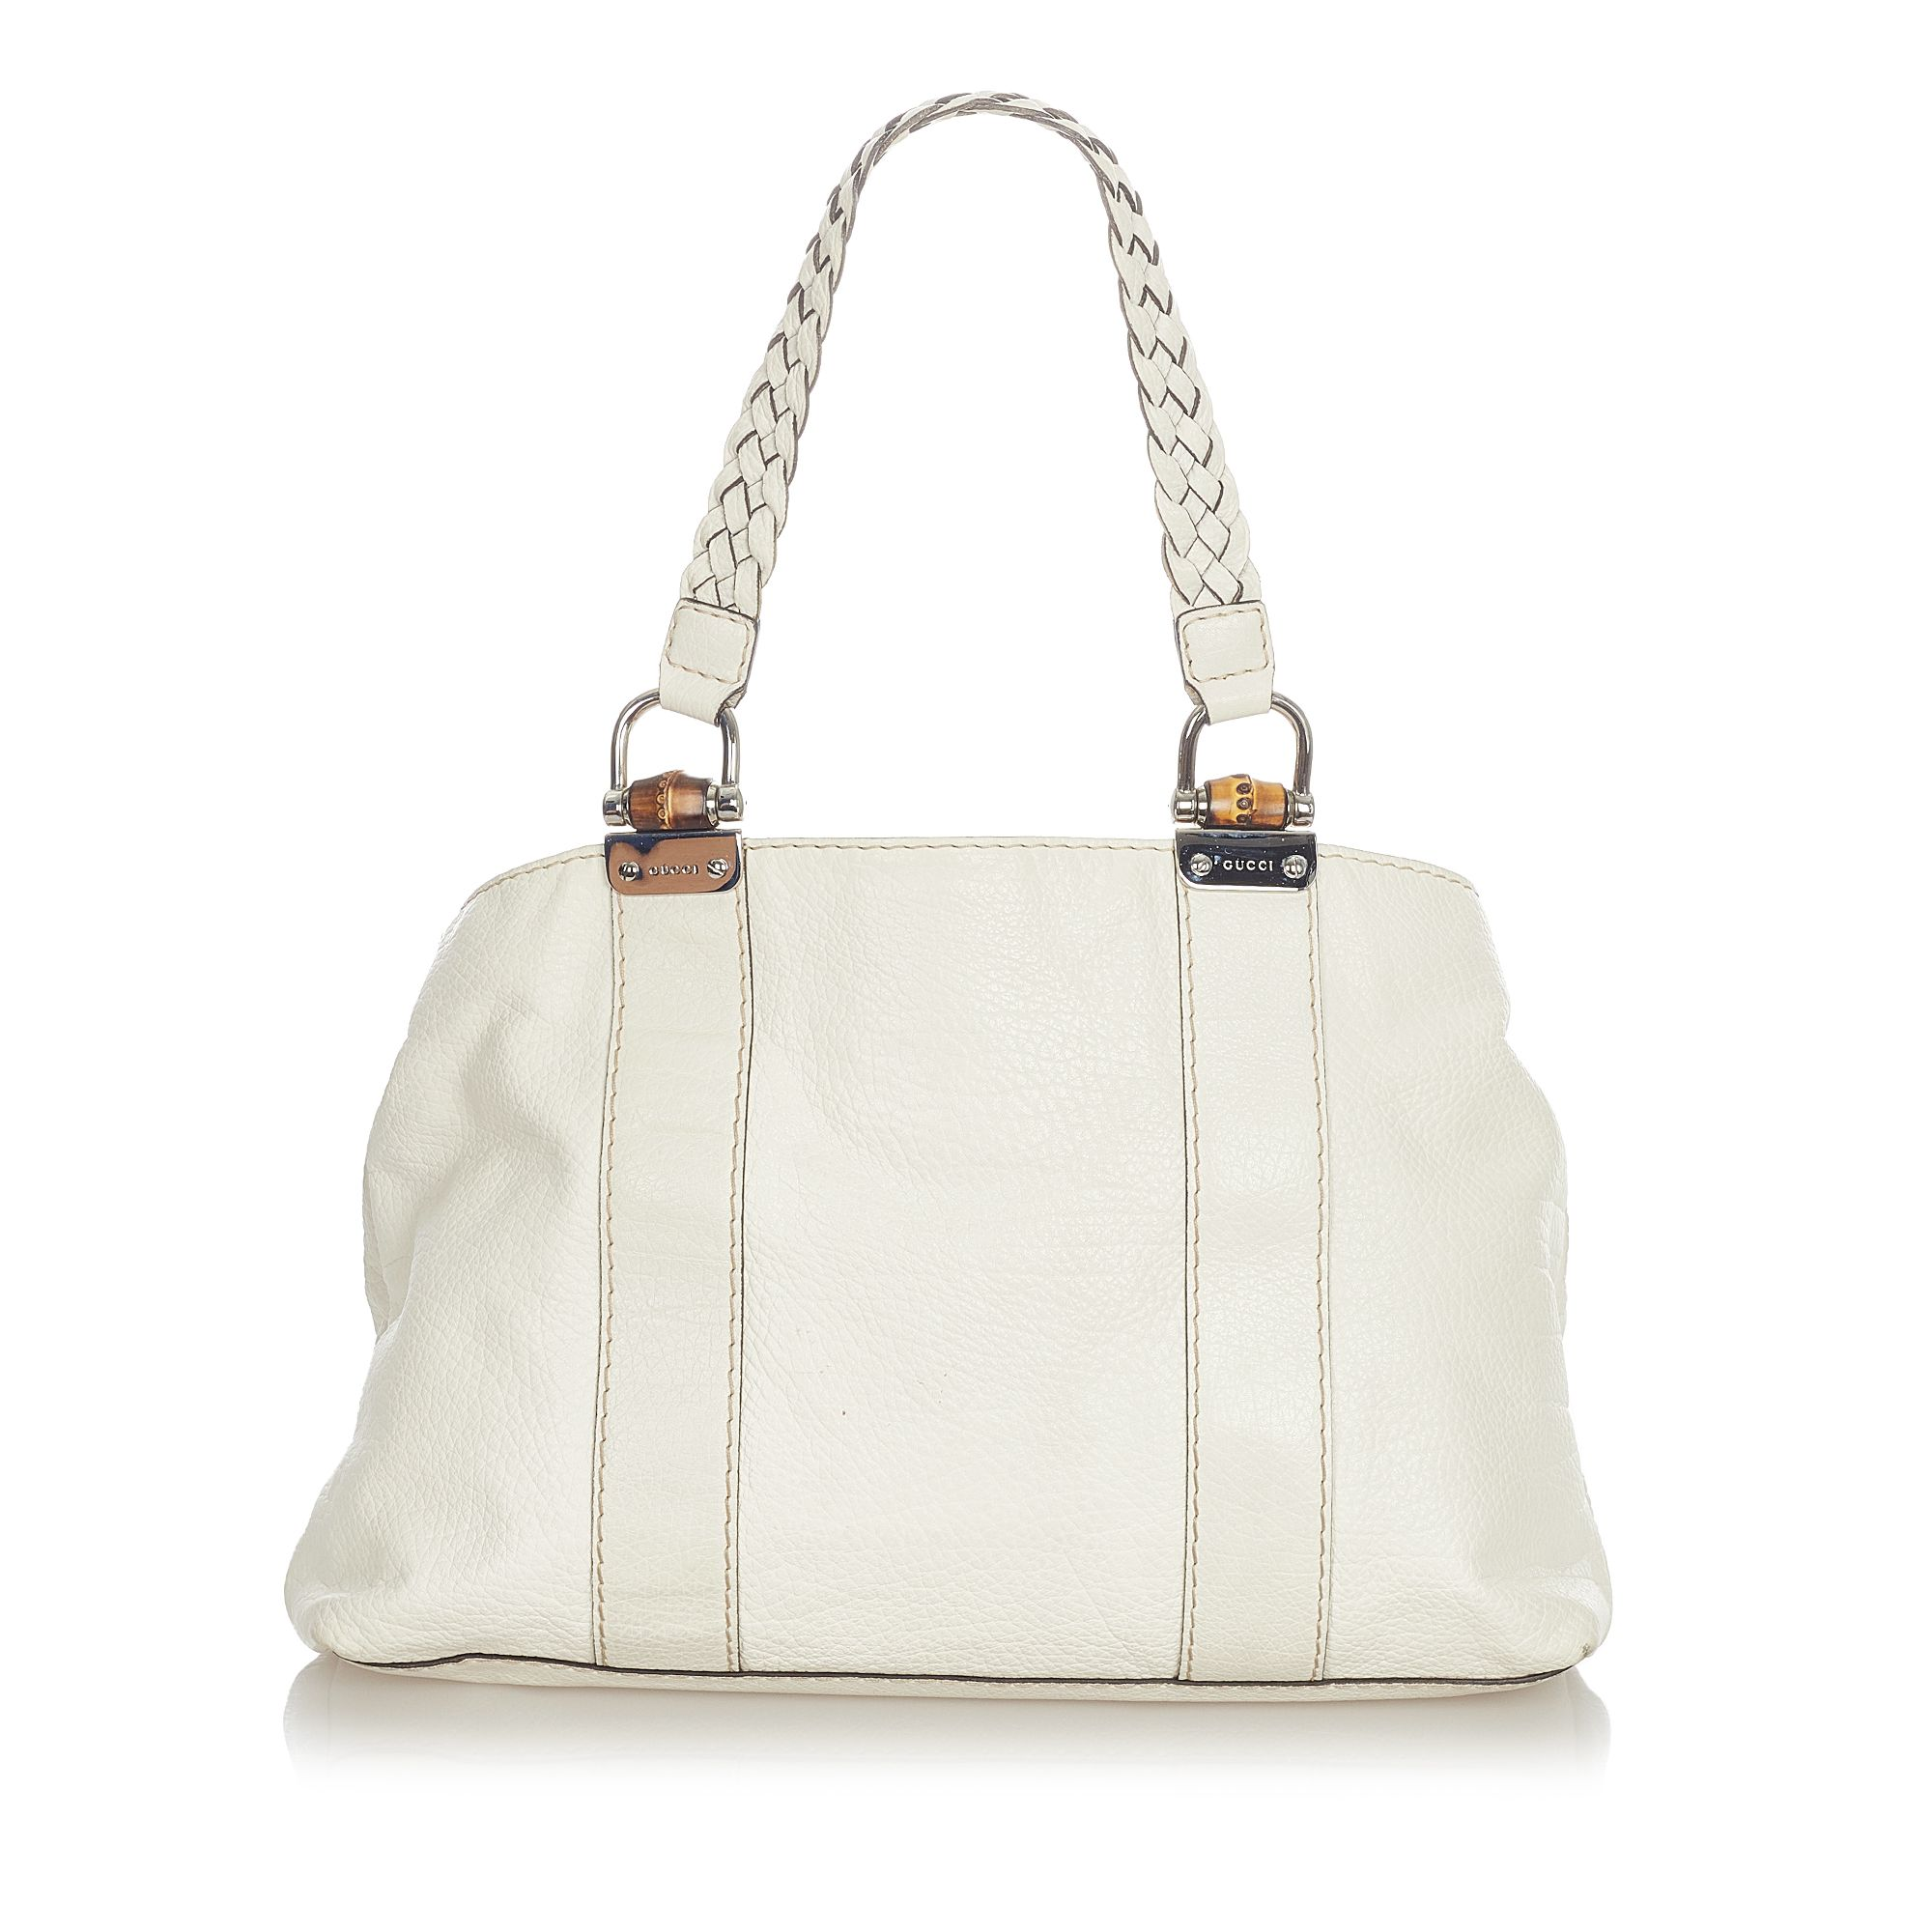 Vintage Gucci Bamboo Bar Leather Tote Bag White